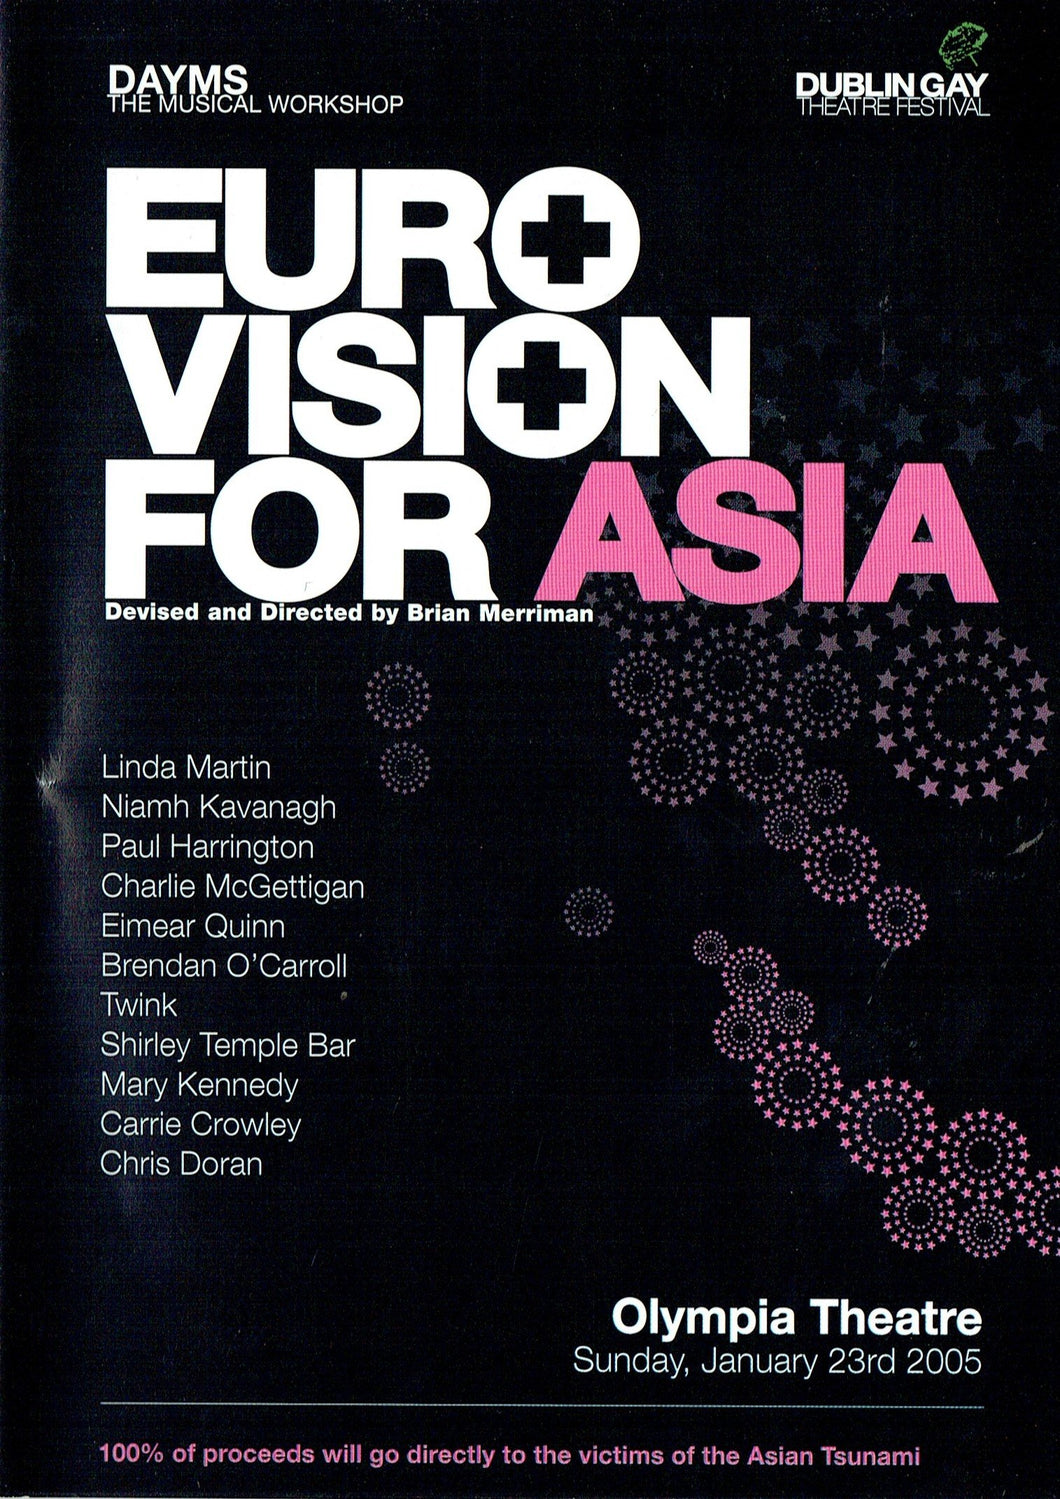 Euro Vision for Asia: Olympia Theatre, Sunday, January 23rd 2005 - Devised and Directed by Brian Merriman (Eurovision)